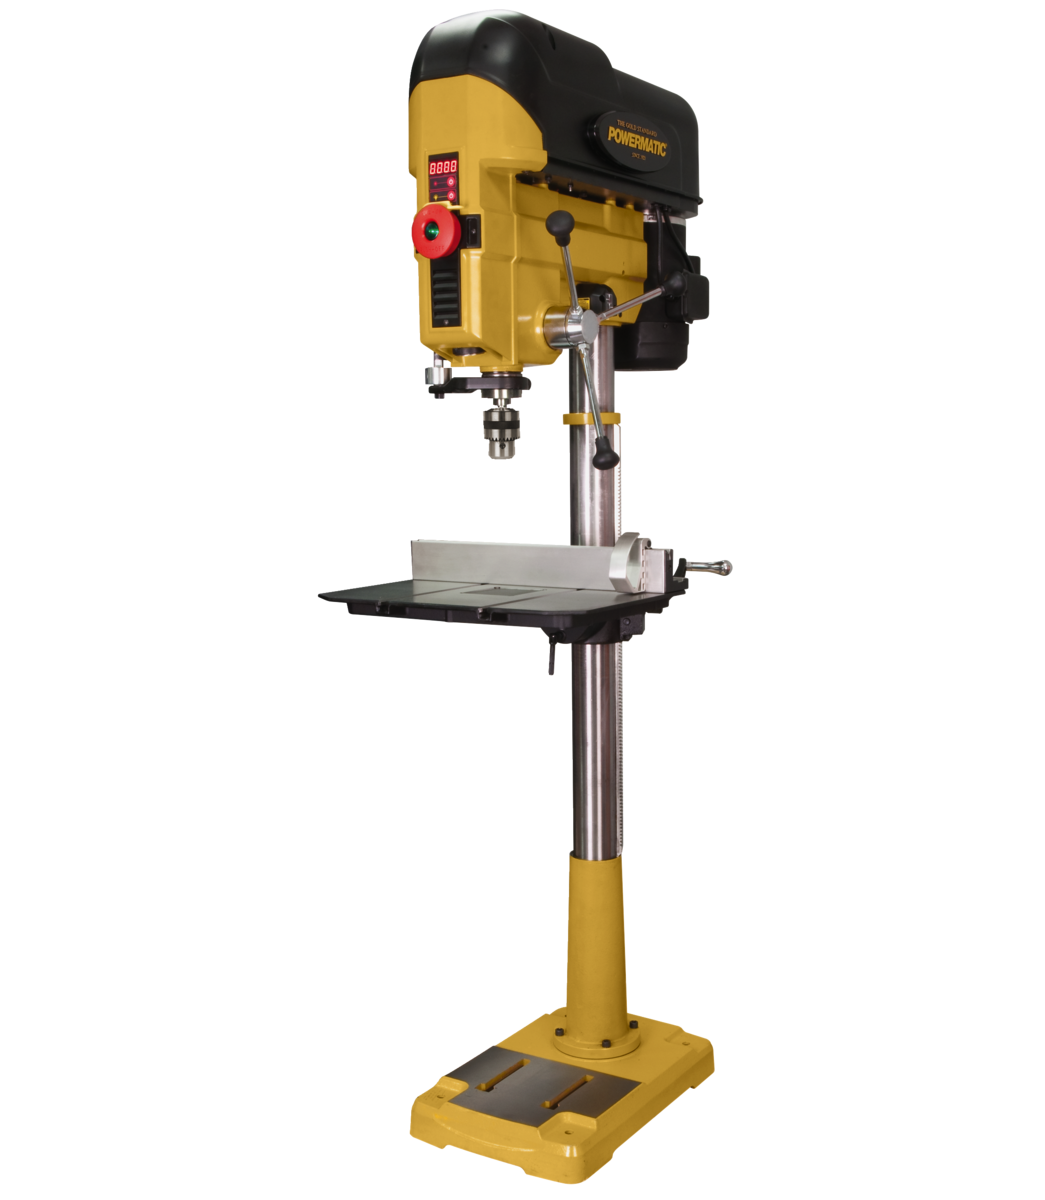 Manual: PM2800B Drill Press, 1HP 1PH 115/230V